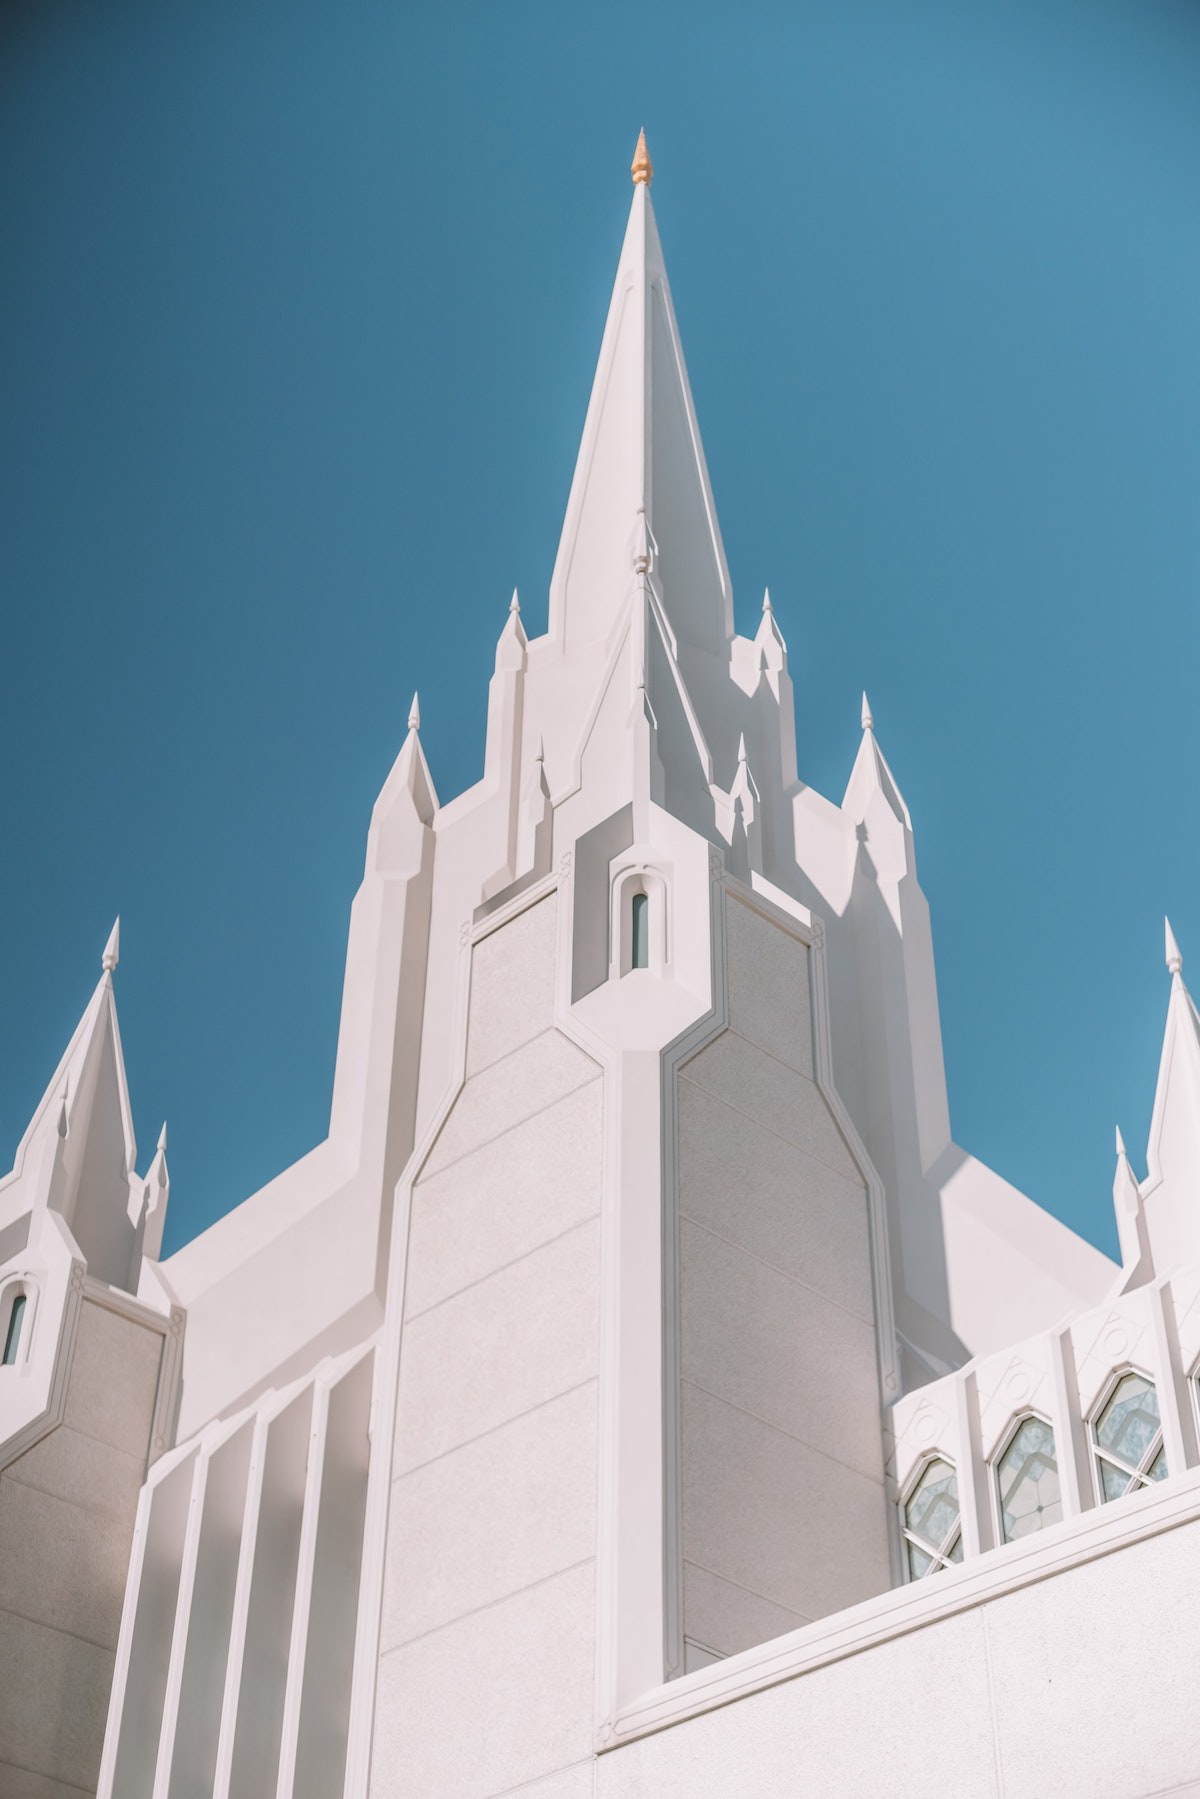 best photography spots in san diego california, The Church of Jesus Christ of Latter-Day Saints La Jolla